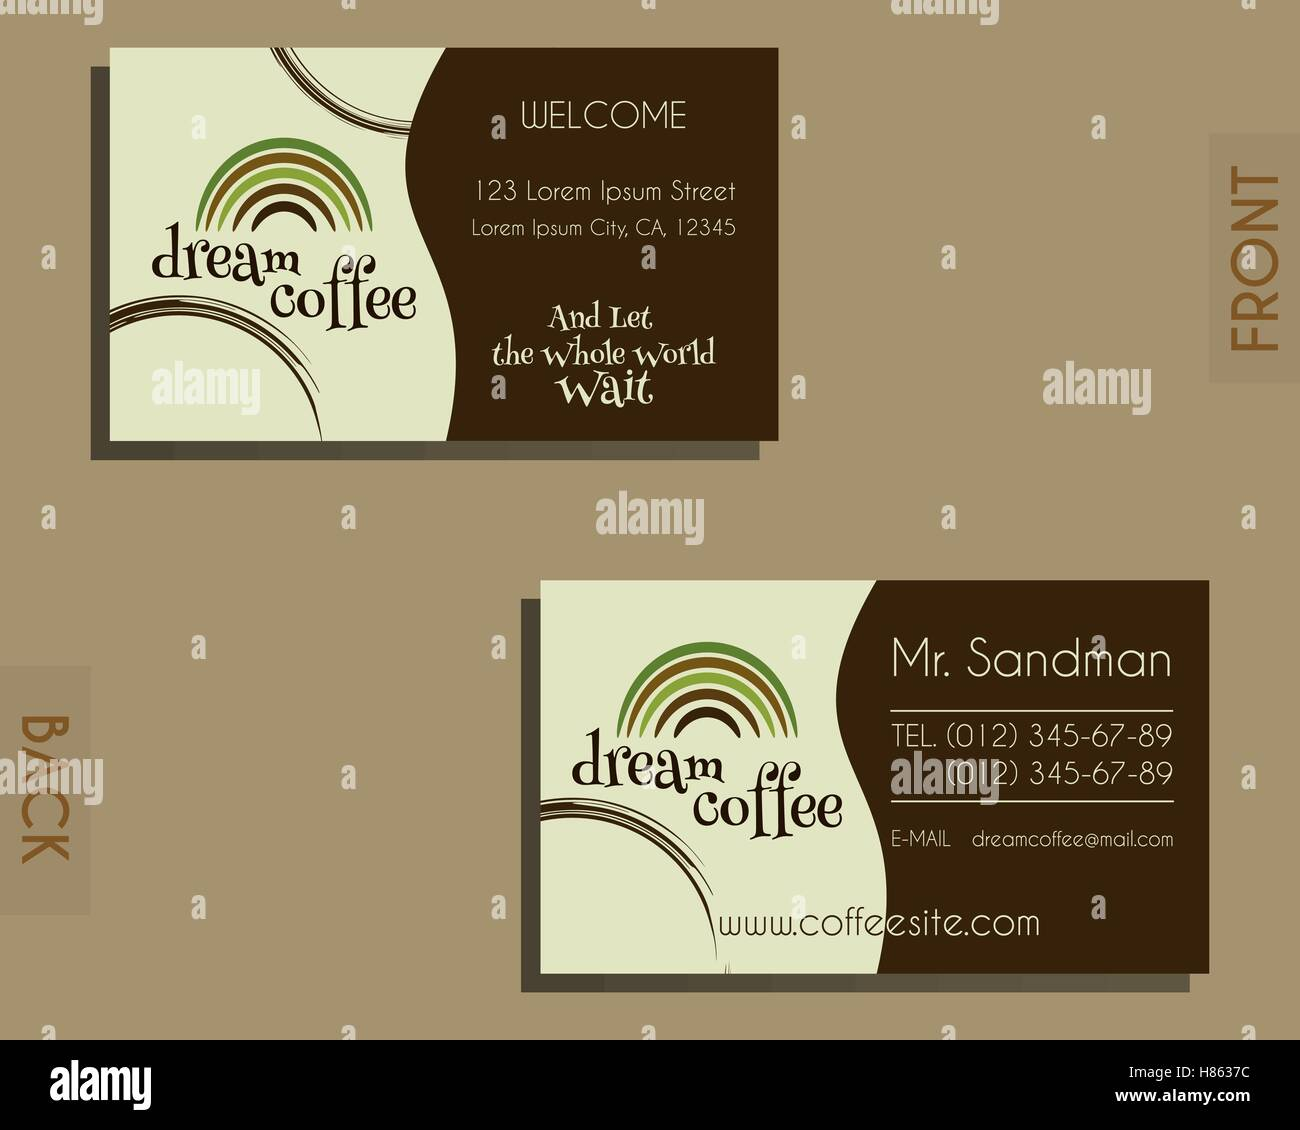 Brand identity elements visiting card template for cafe stock brand identity elements visiting card template for cafe restaurant and other food business coffee stains design vector illustration wajeb Image collections